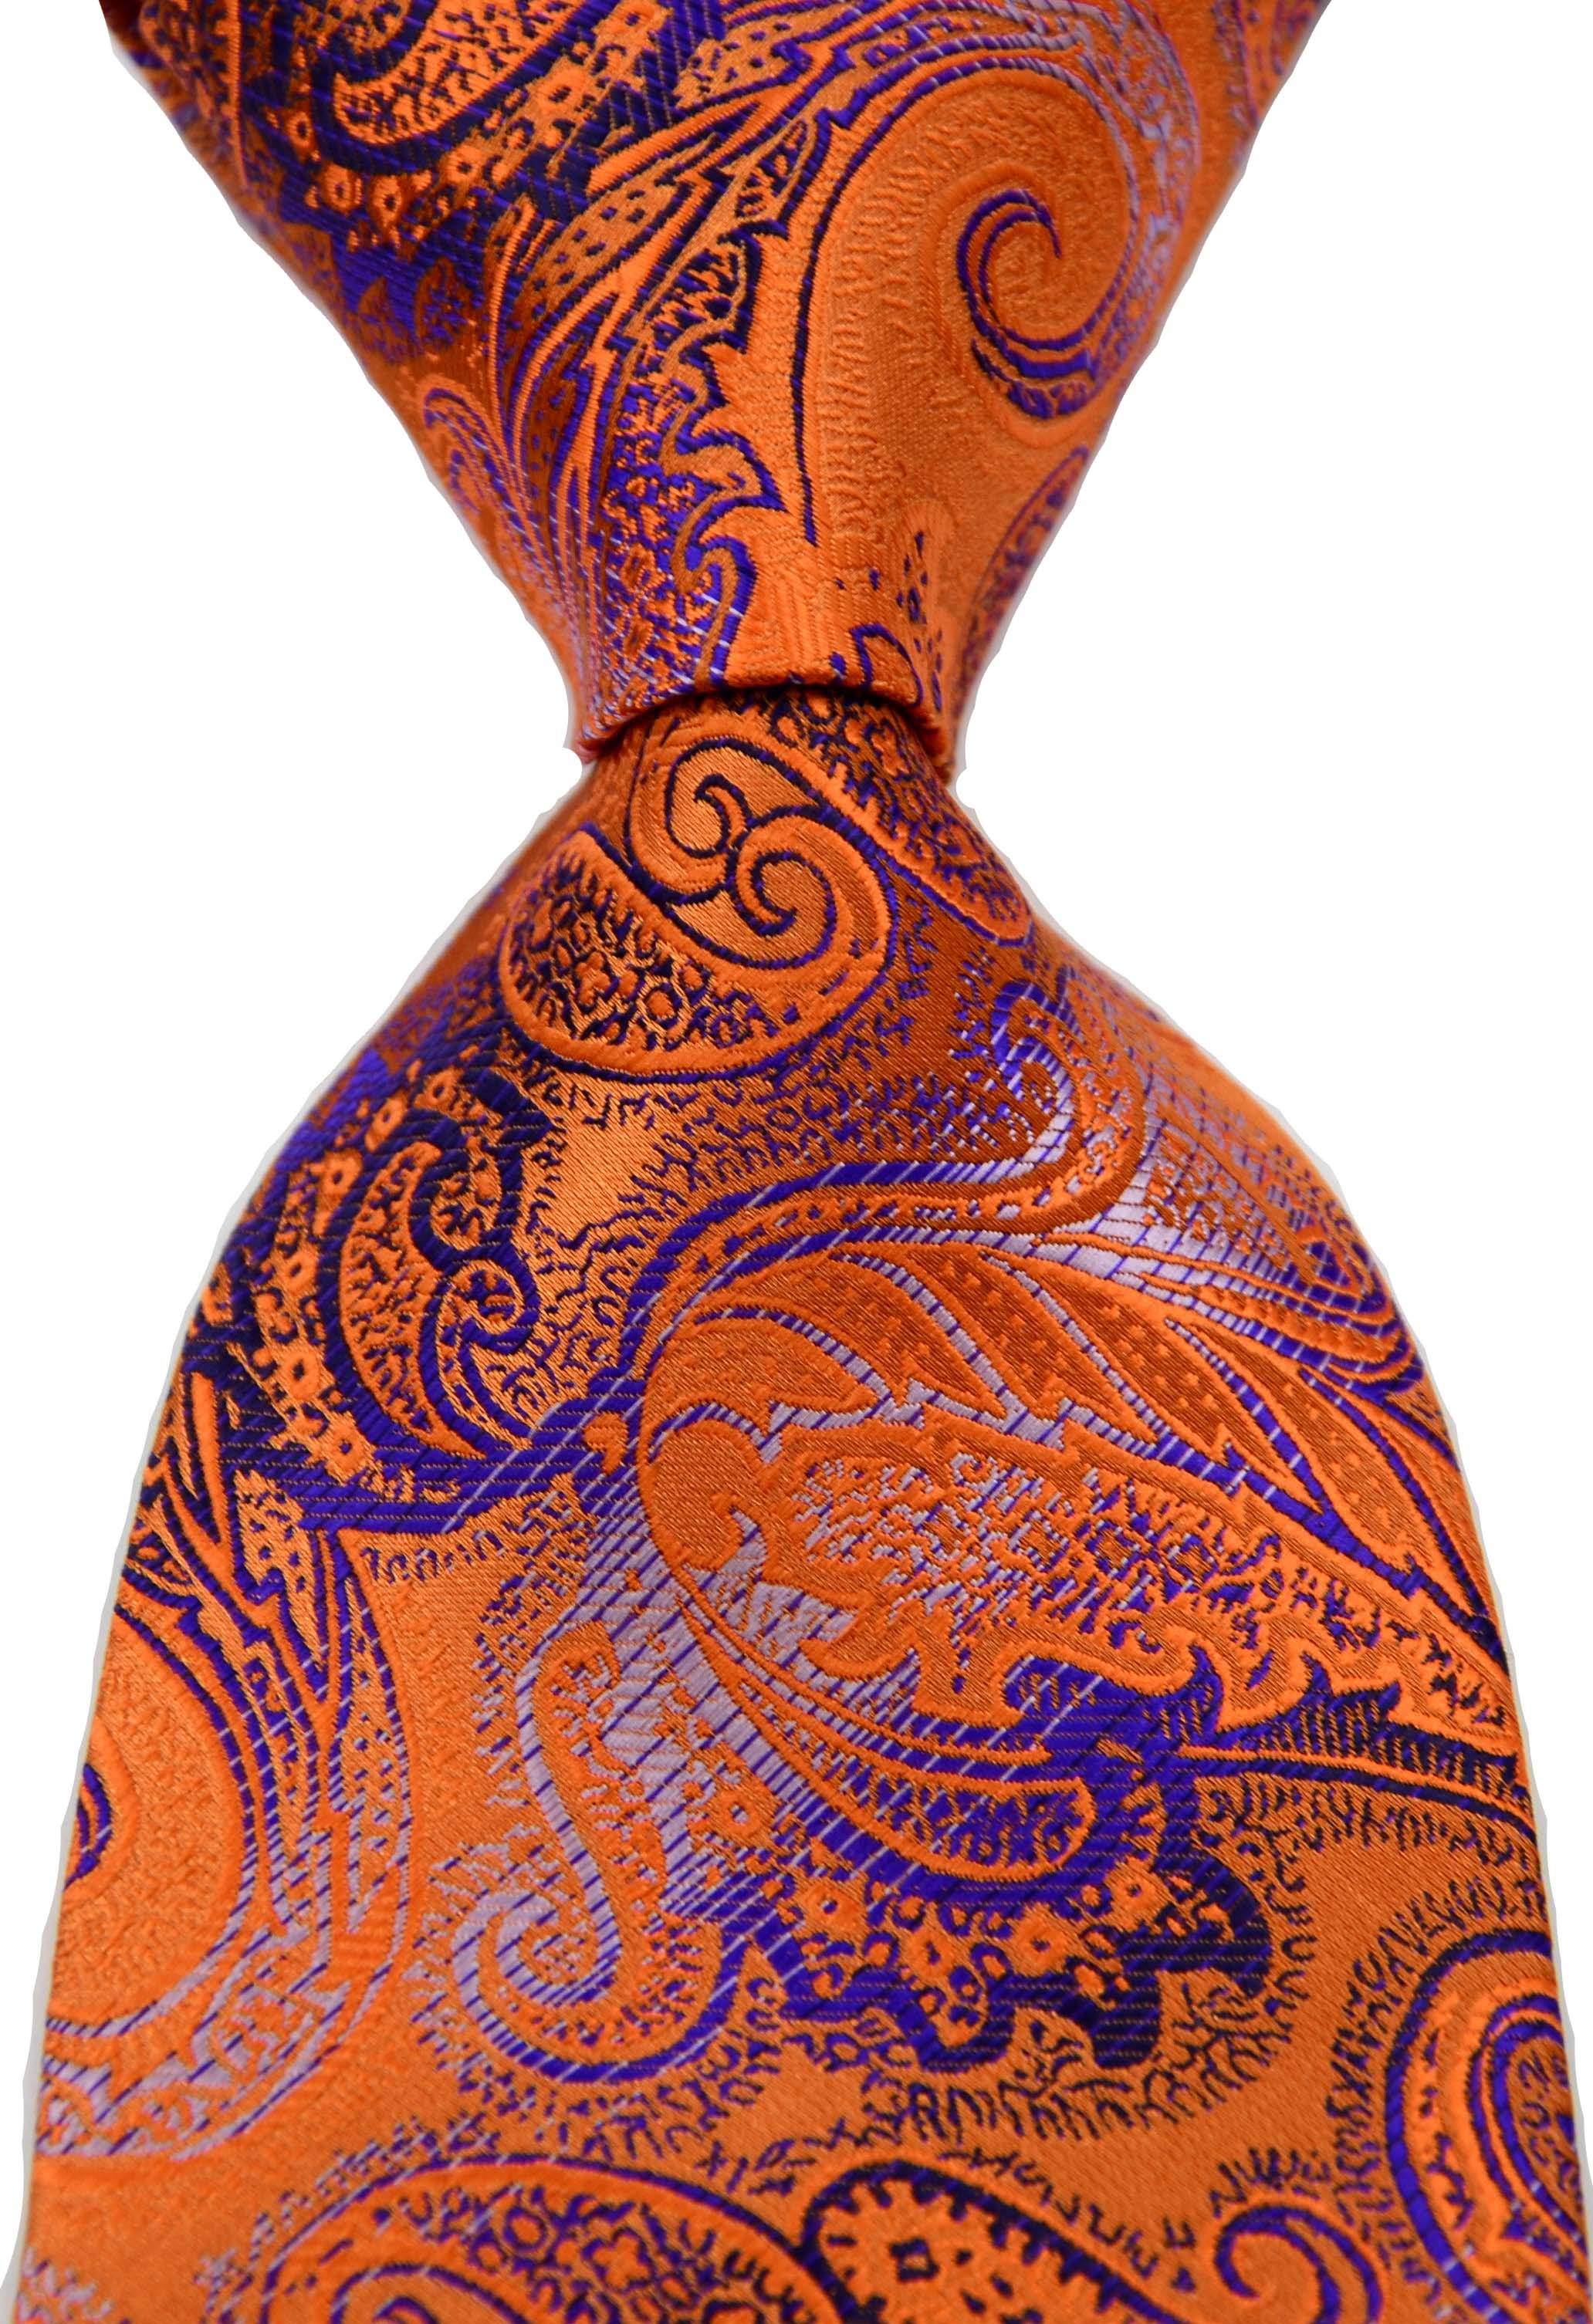 Fashion MEN'S  Classic Paisley Floral Orange Blue Gold Ties  Wedding Tie Silk Jacquard Woven Mens Dot Tie  Neck Ties